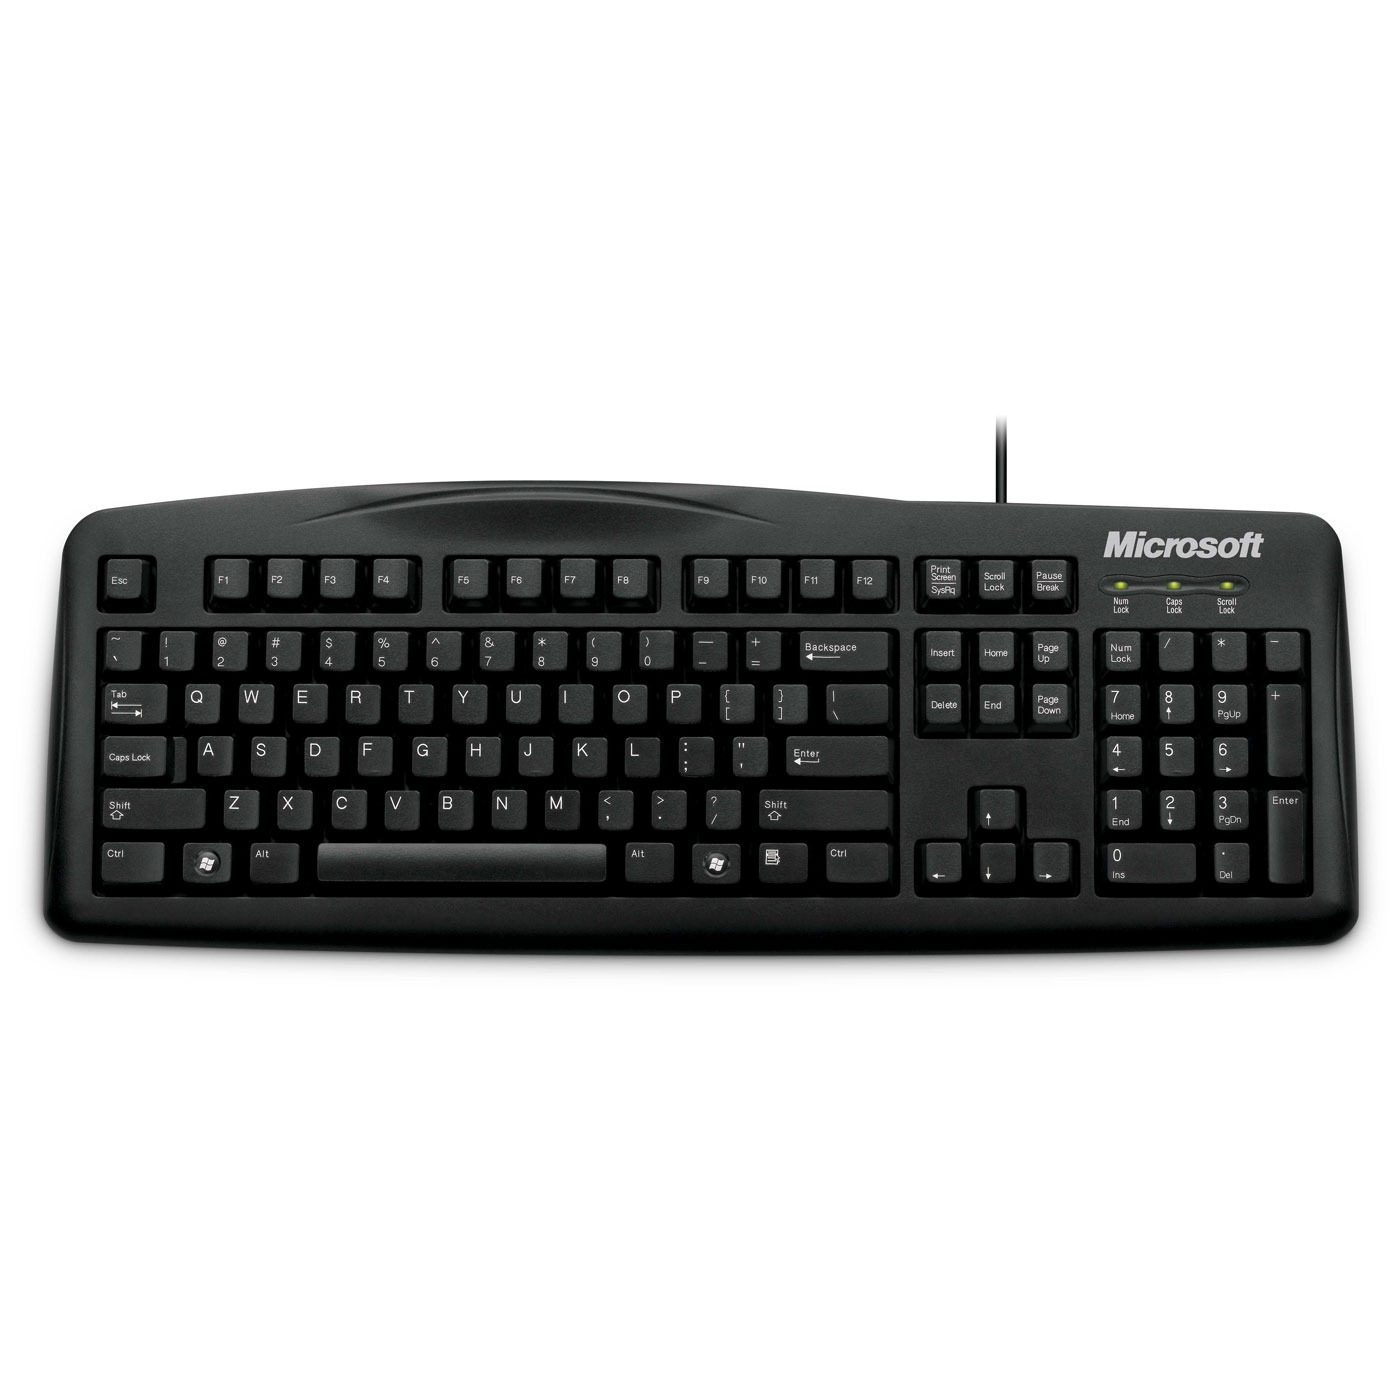 Microsoft Wired Keyboard 200 - 6JH-00011